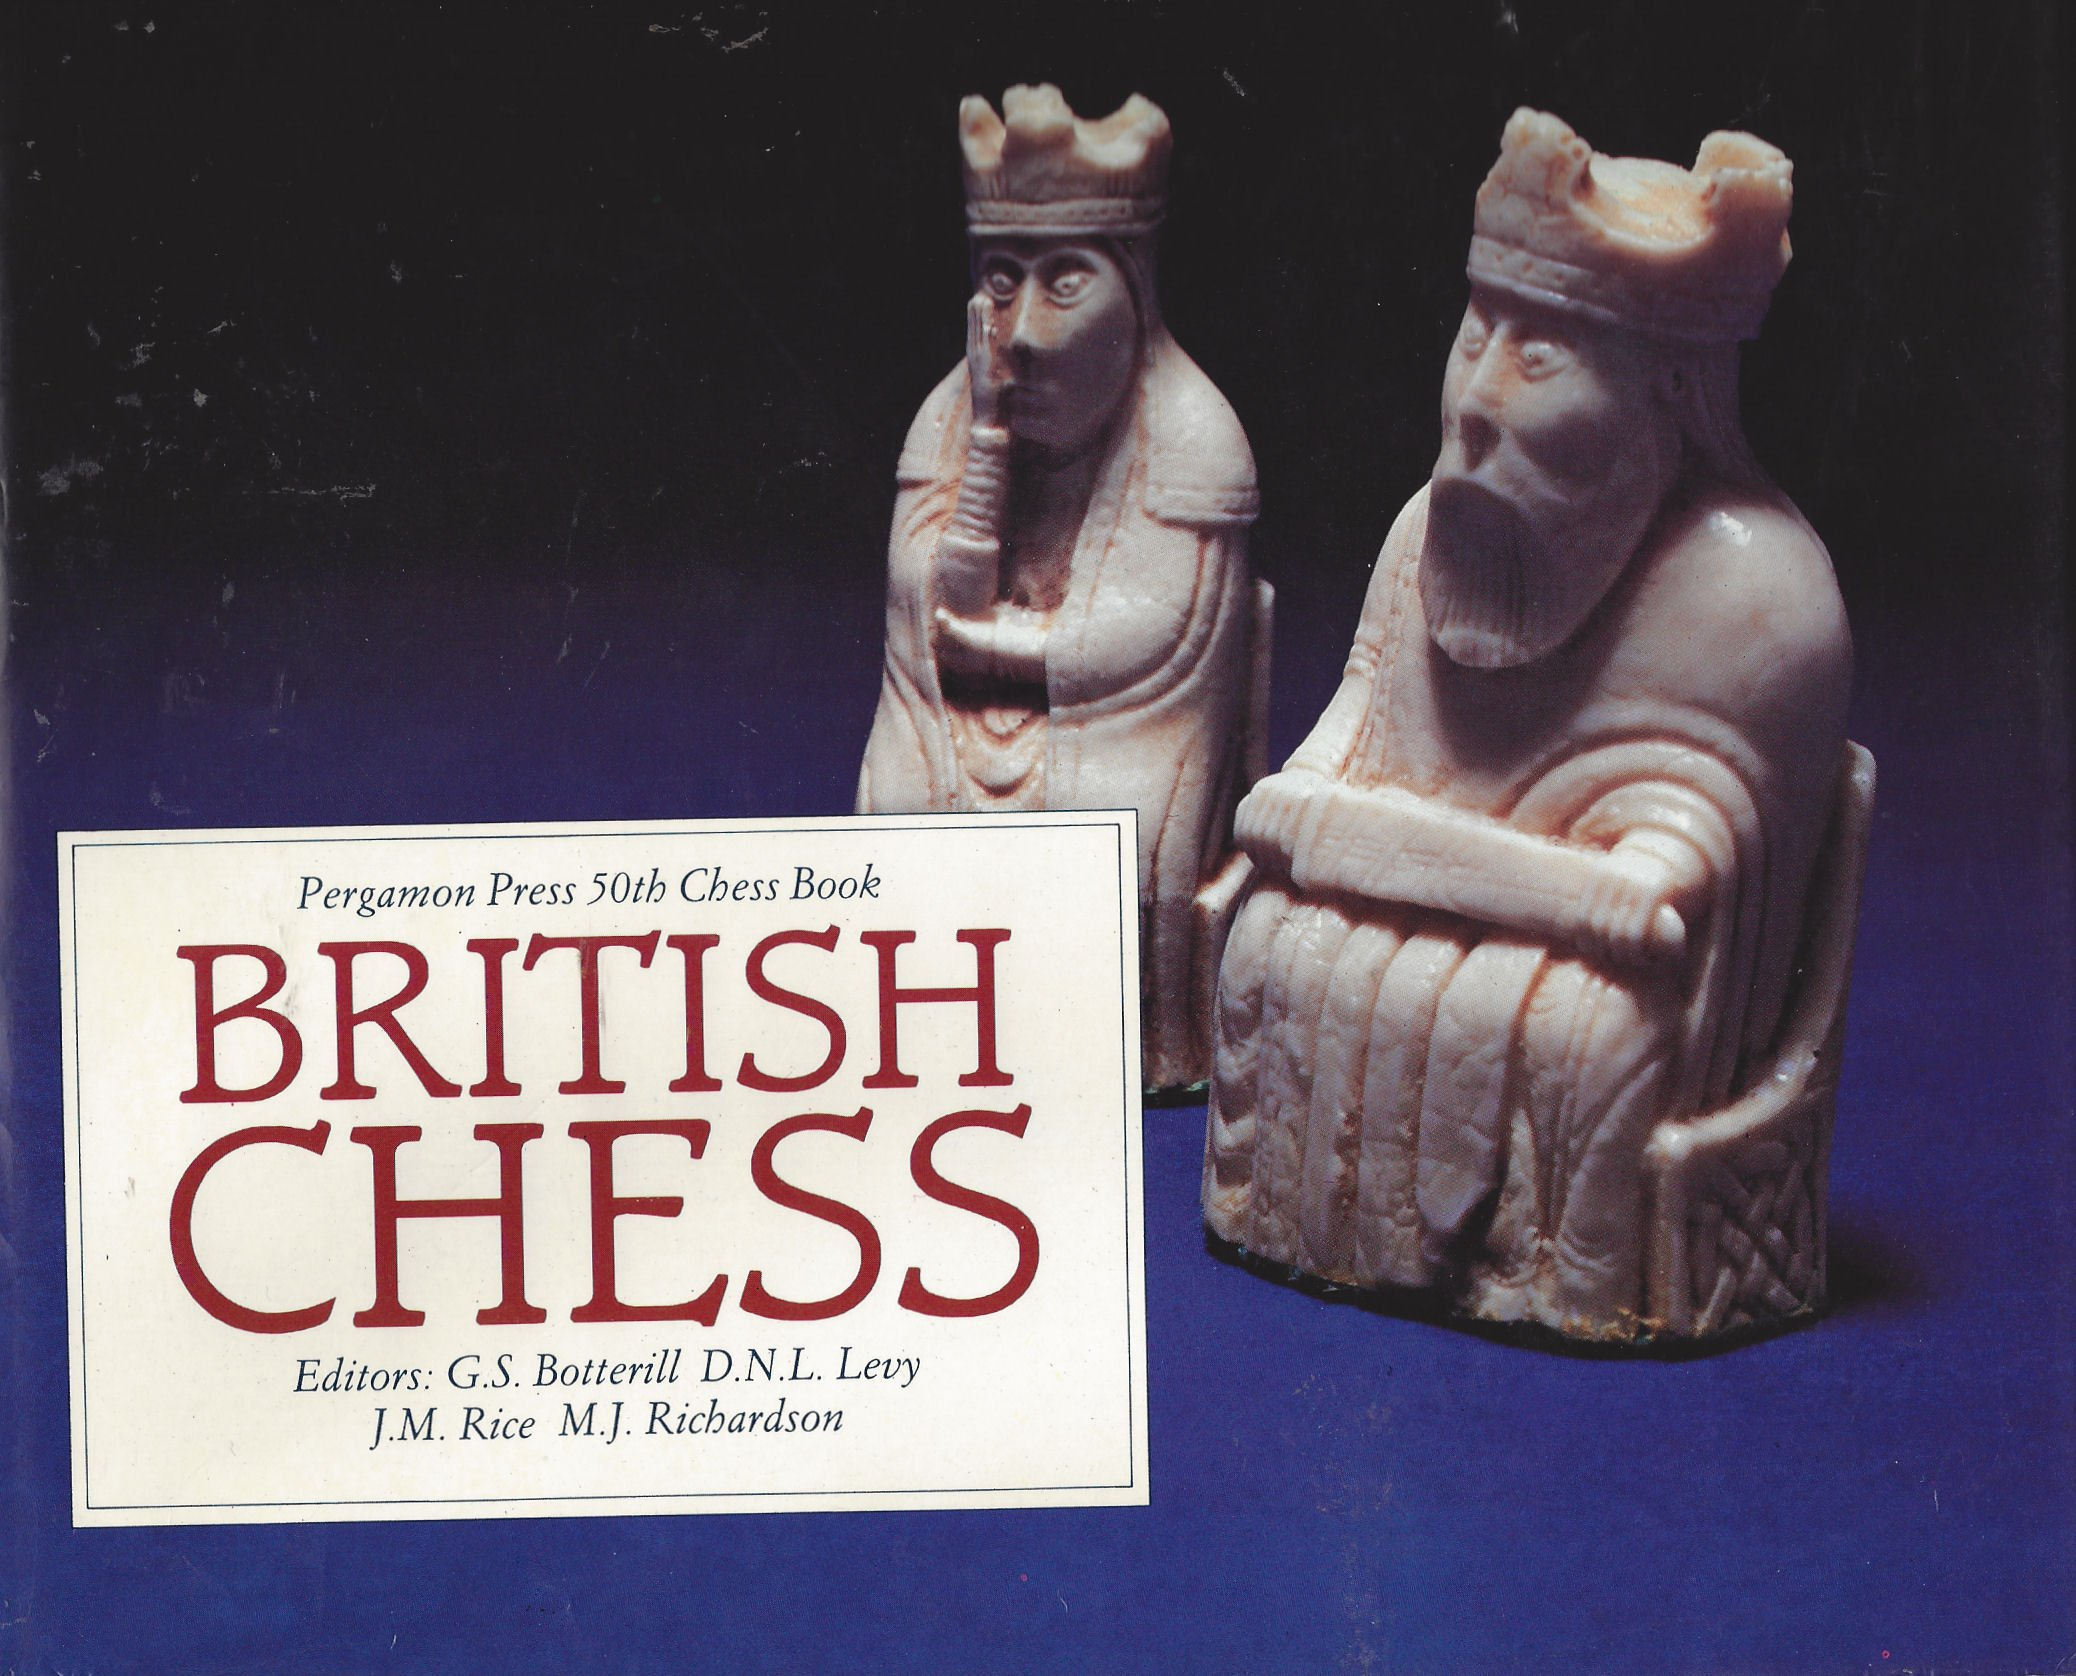 British Chess, Pergamon Press, 1983. Editors : GS Botterill, DNL Levy, JM Rice and MJ Richardson, ISBN 0 08 024134 4